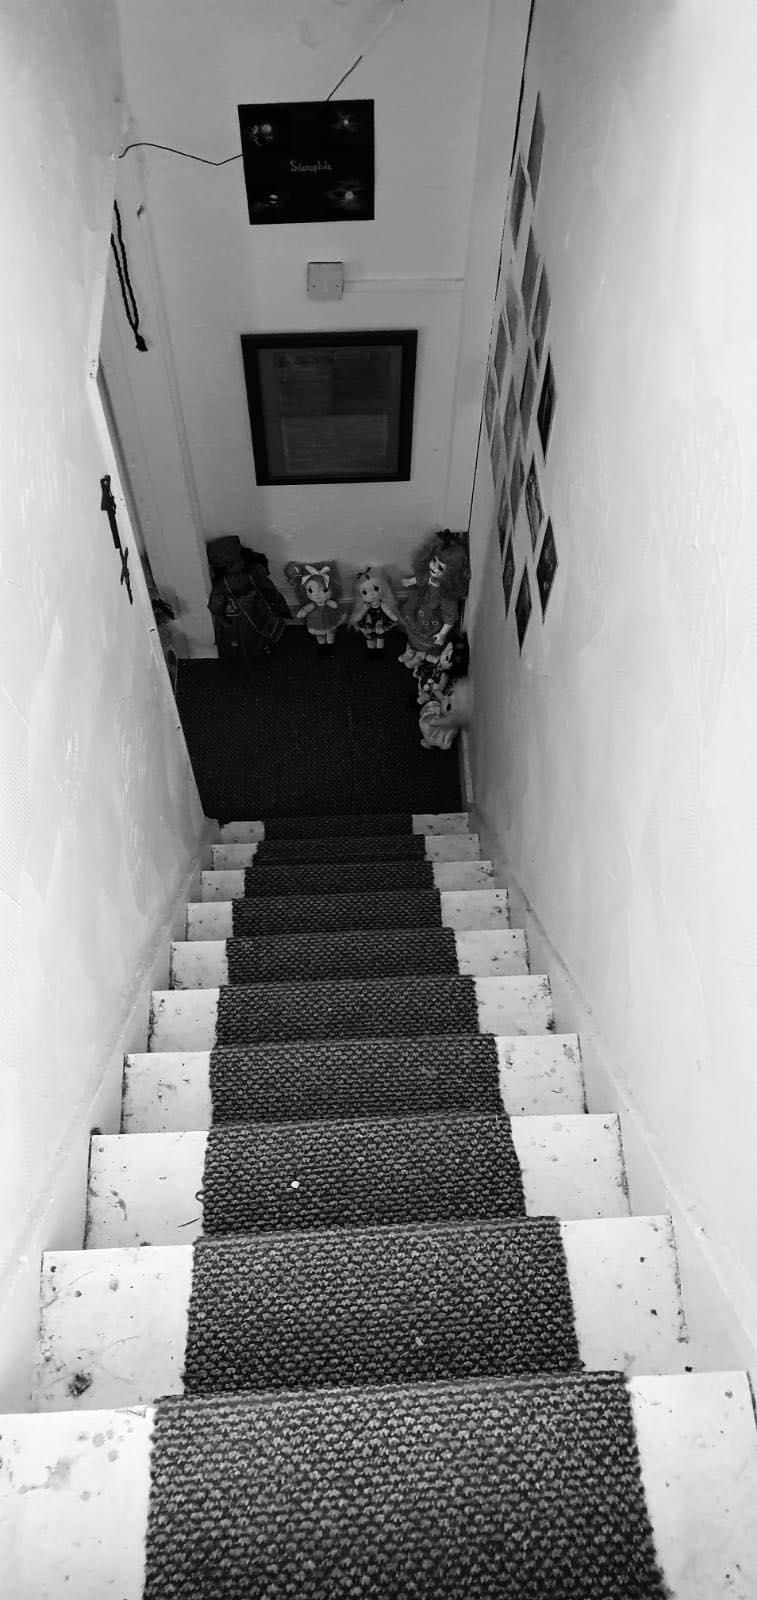 THE HAUNTED MUSEUM GHOST HUNTS OPTIONAL SLEEPOVER THE POLTERGEIST HOUSE